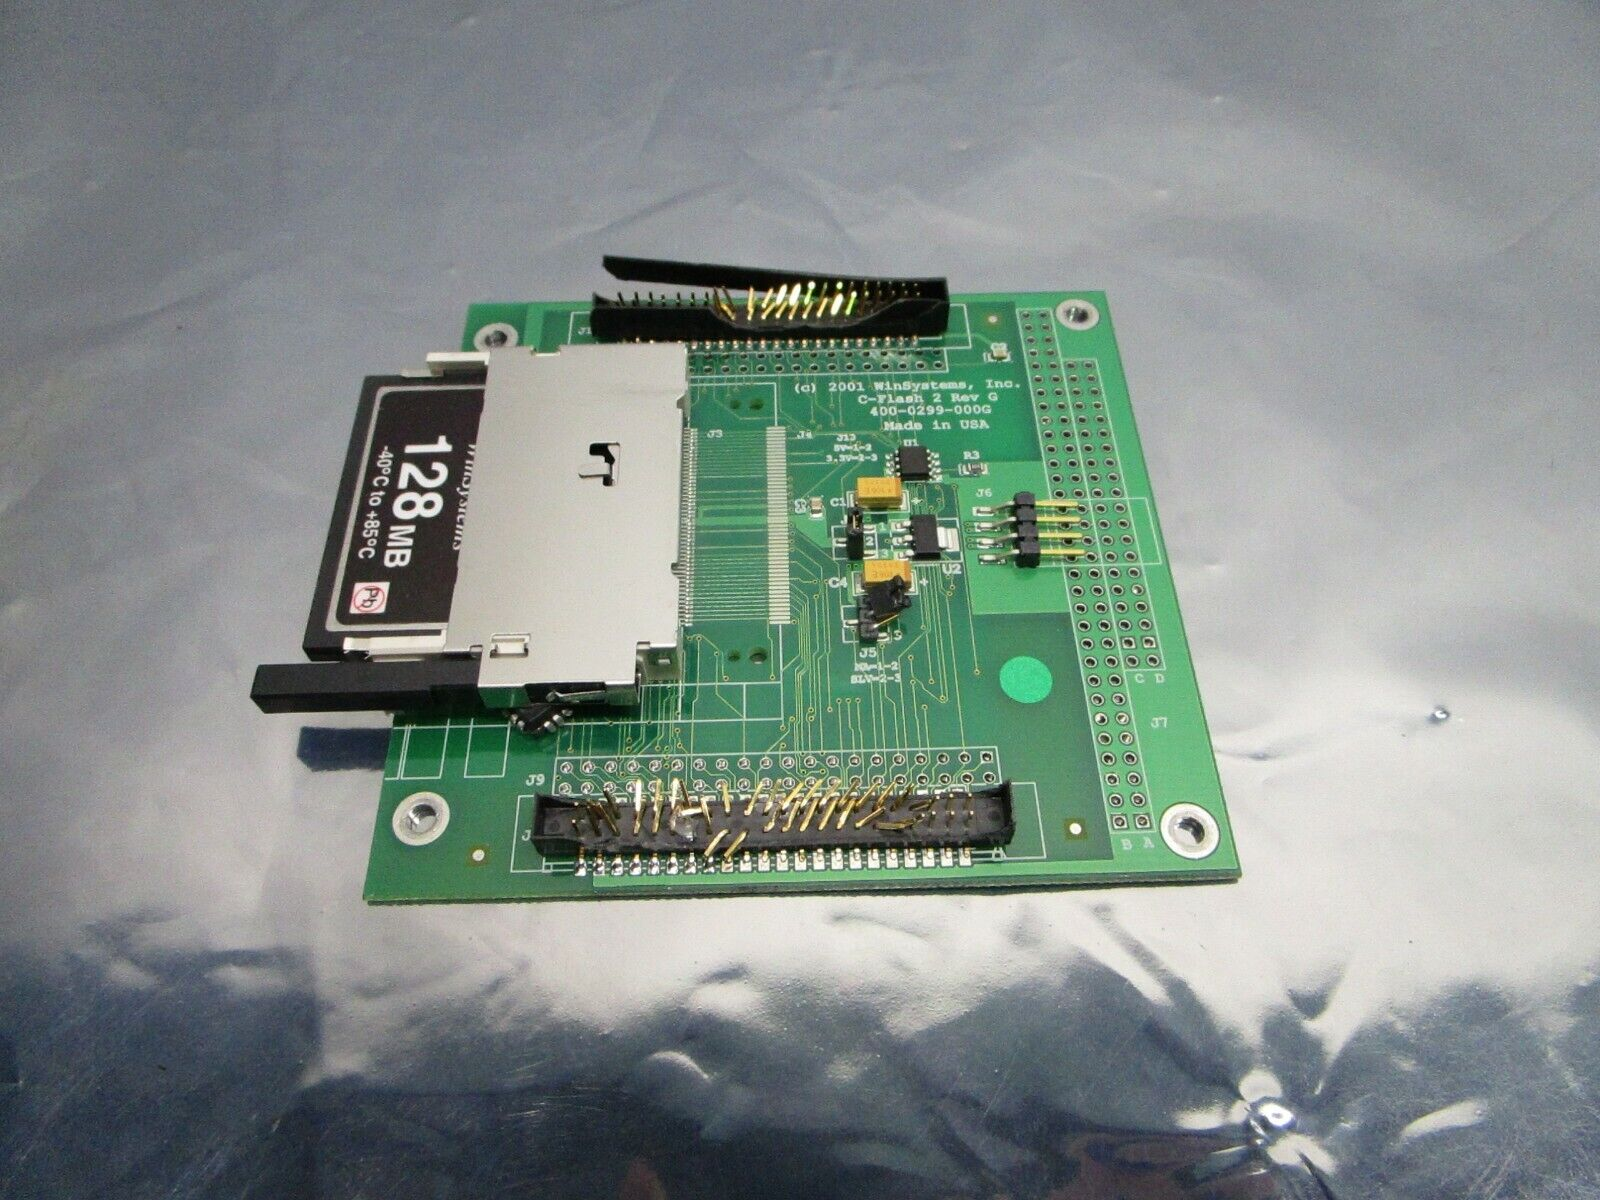 Win Systems 400-0299-000 C-Flash 2 PCB 400-0299-000G ADP-CFLASH2-44-0, 101196